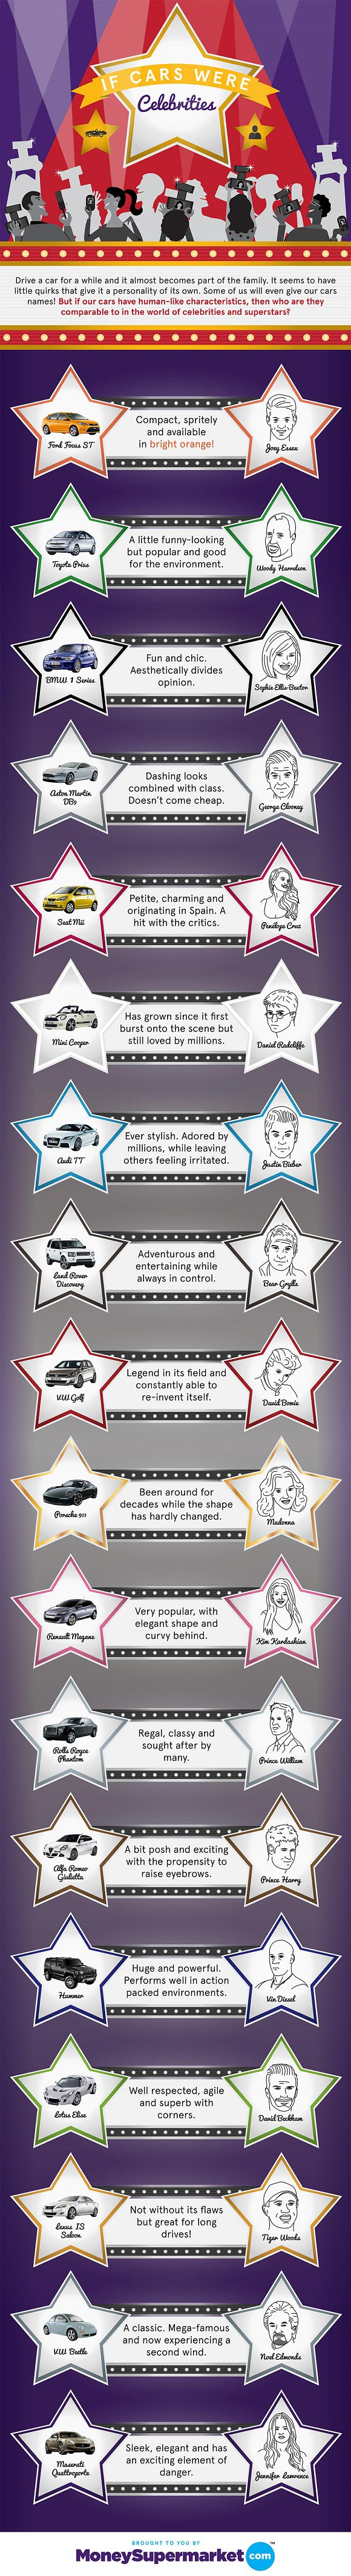 If I Was a Car What Would I Be-Infographic